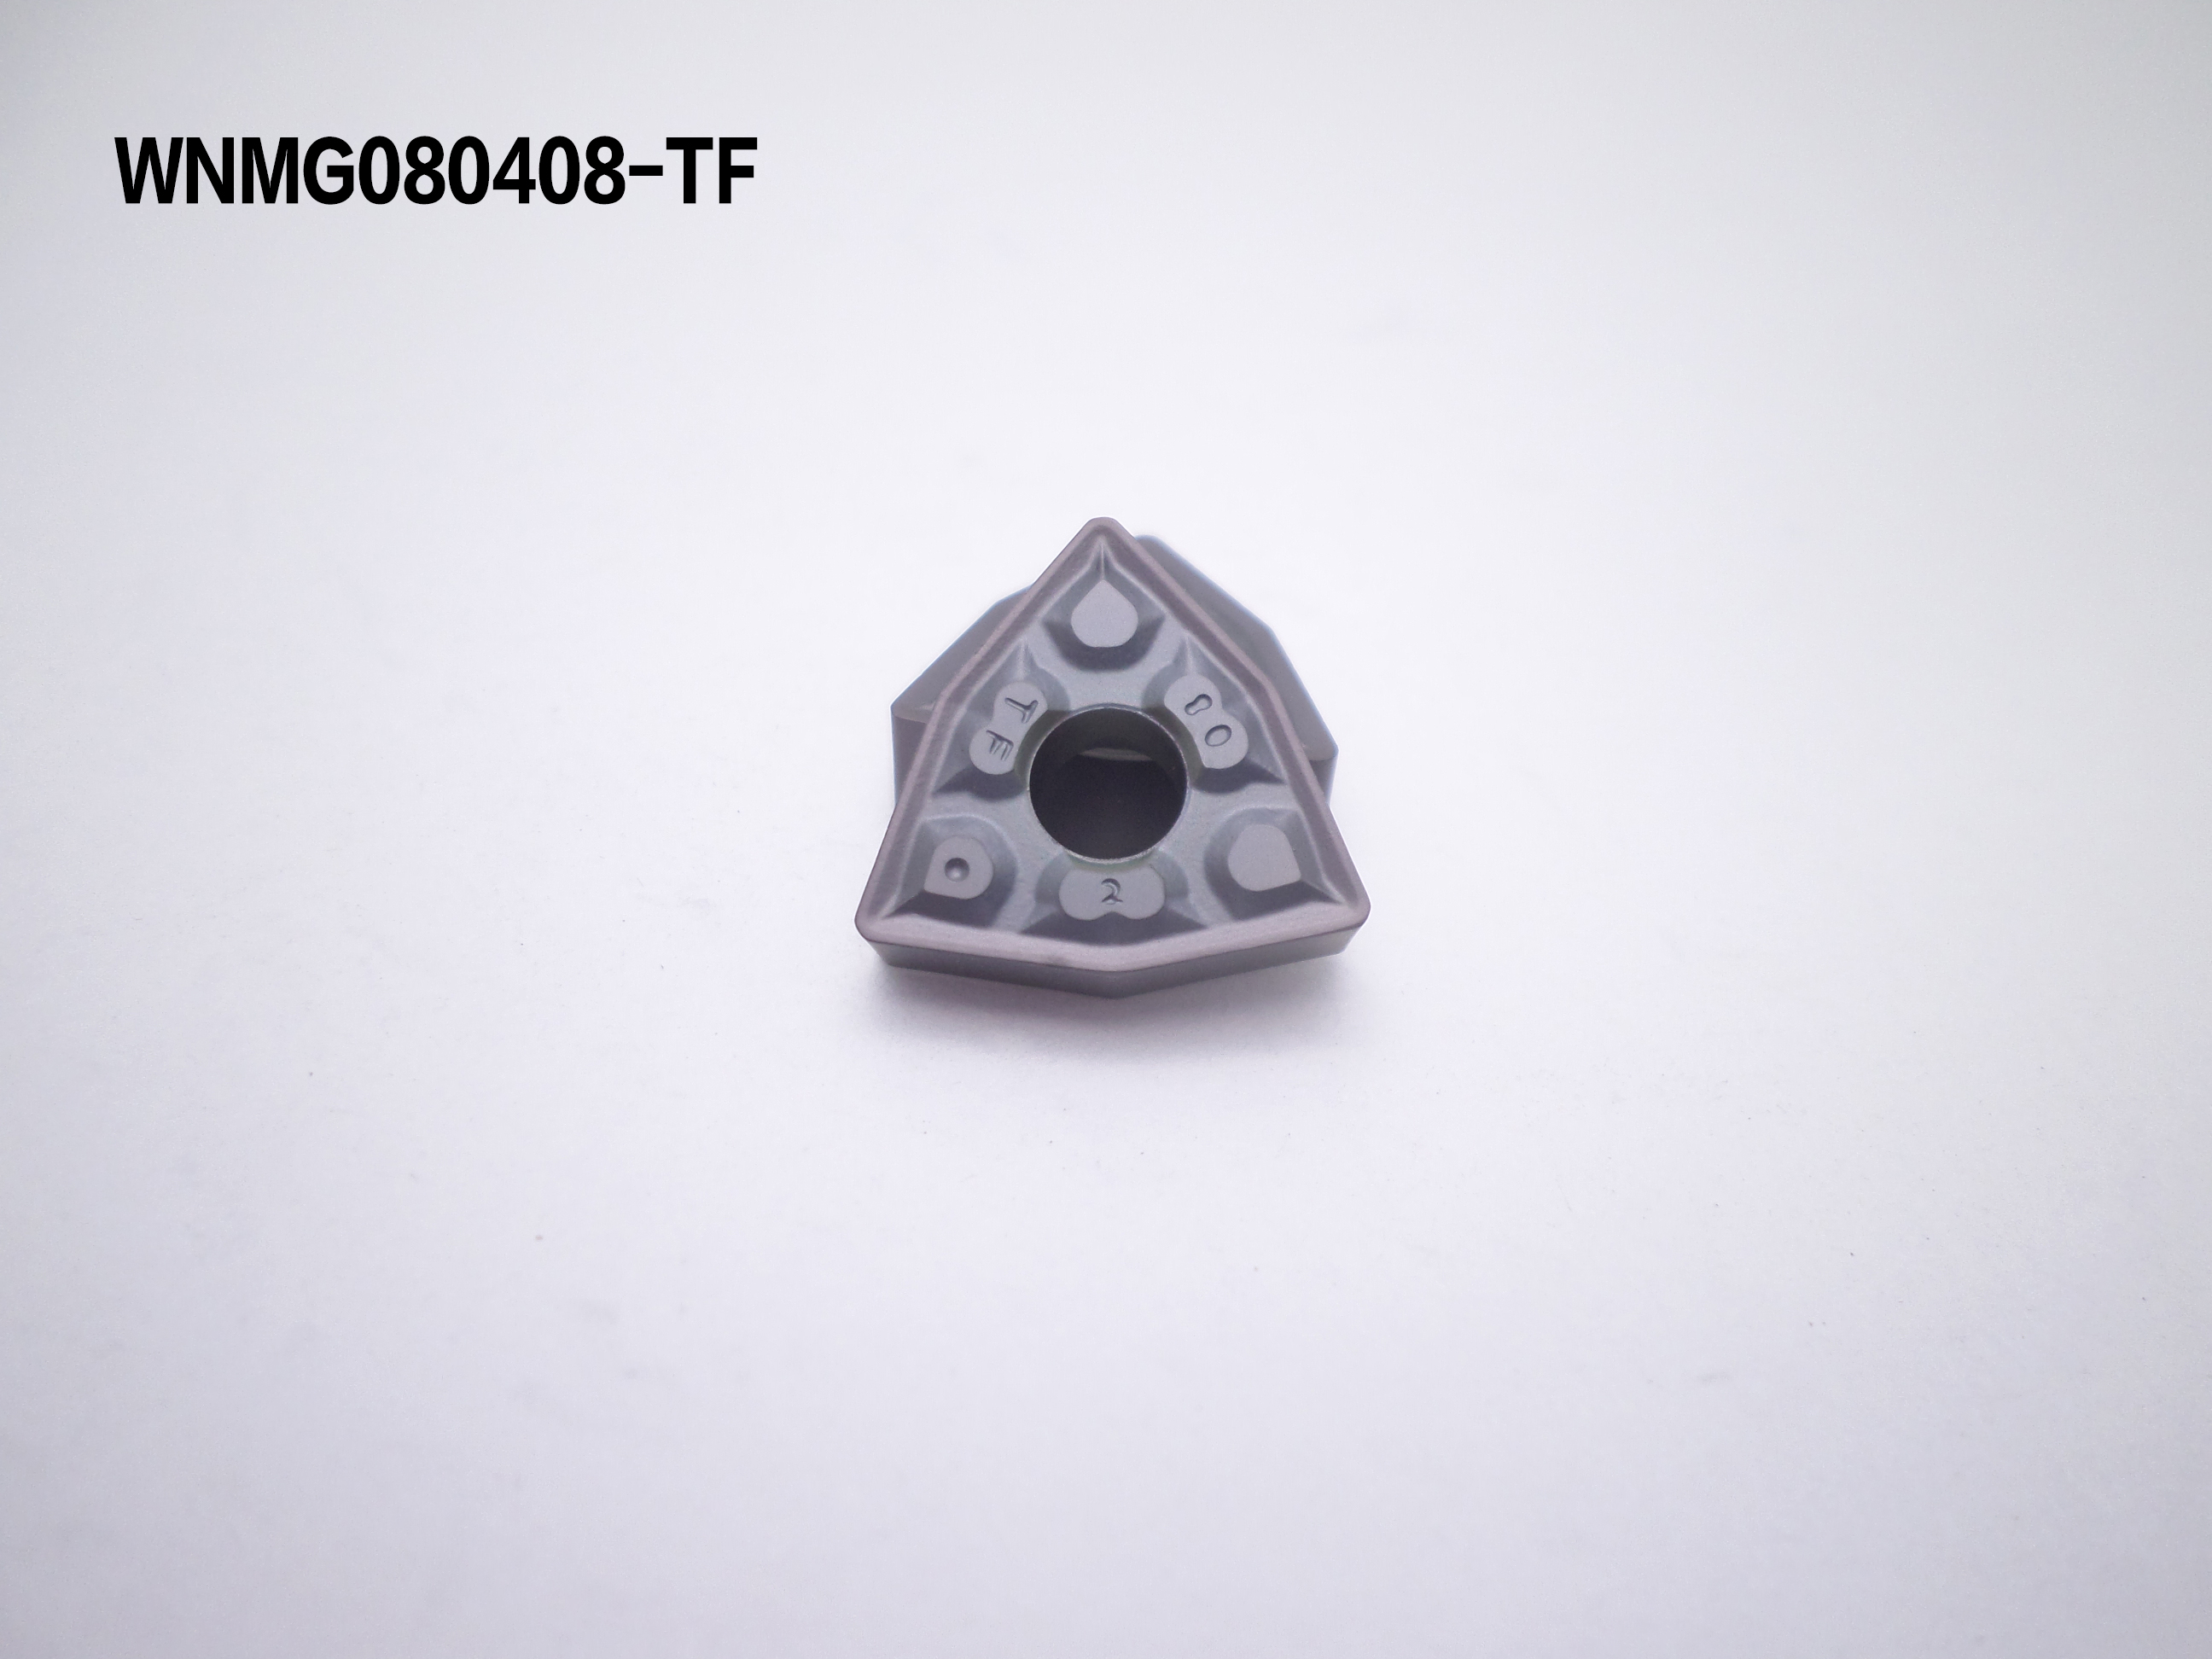 7 Degree Positive Clearance Angle 0.015 Corner Radius 3//32 Thickness Ultra-Dex WCMT 1.51.51 UD51 80 Degree Trigon Insert UD51 Grade Pack of 10 0.187 Inscribe Circle Size